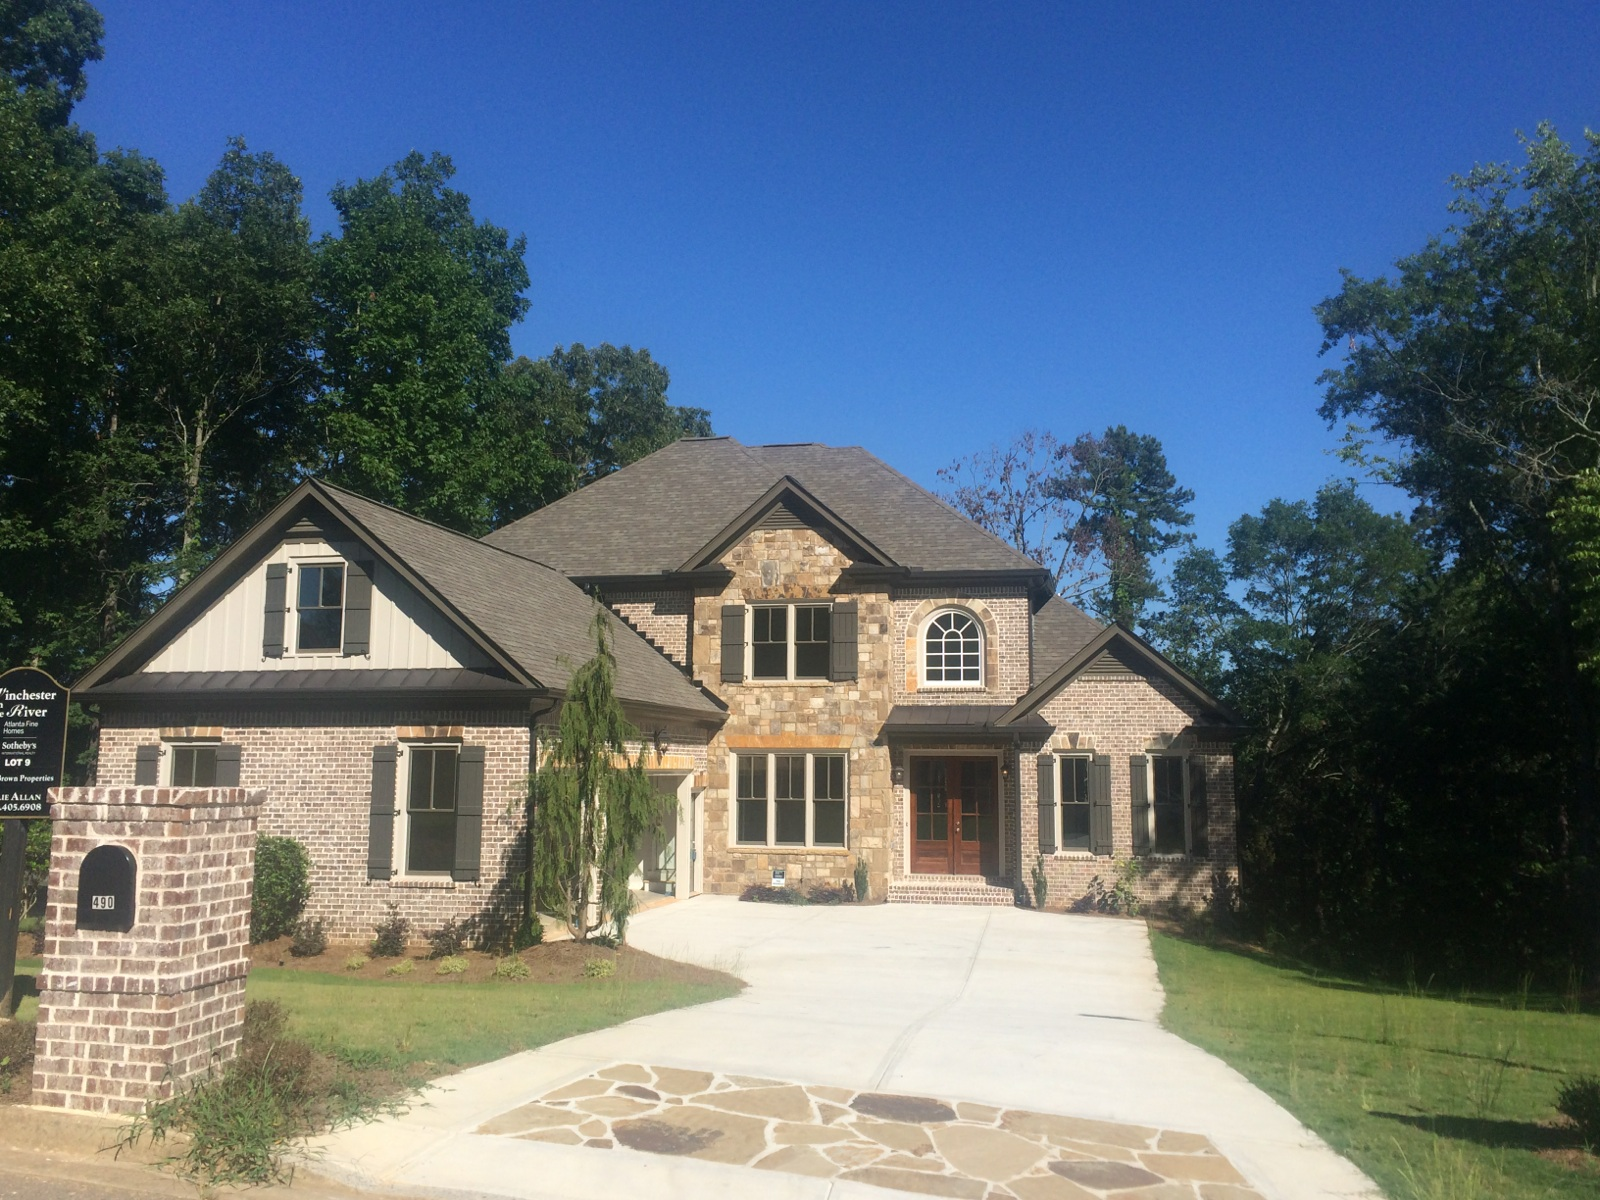 Single Family Home for Sale at New Construction in Lambert High School District 490 Overlook Mountain Drive Suwanee, Georgia, 30024 United States